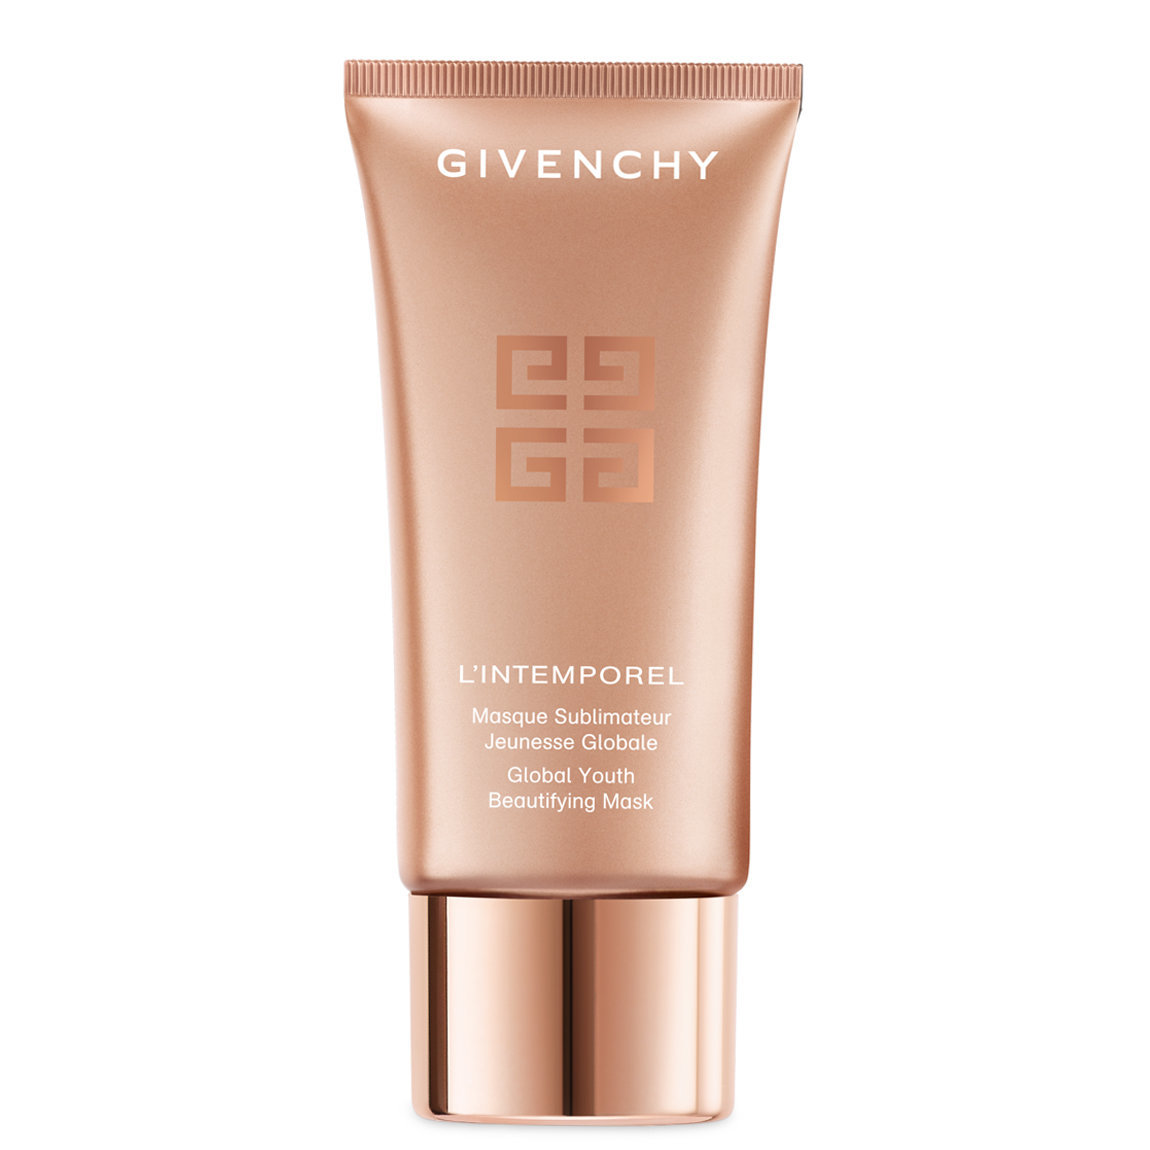 Givenchy L'Intemporel Beautifying Mask alternative view 1 - product swatch.